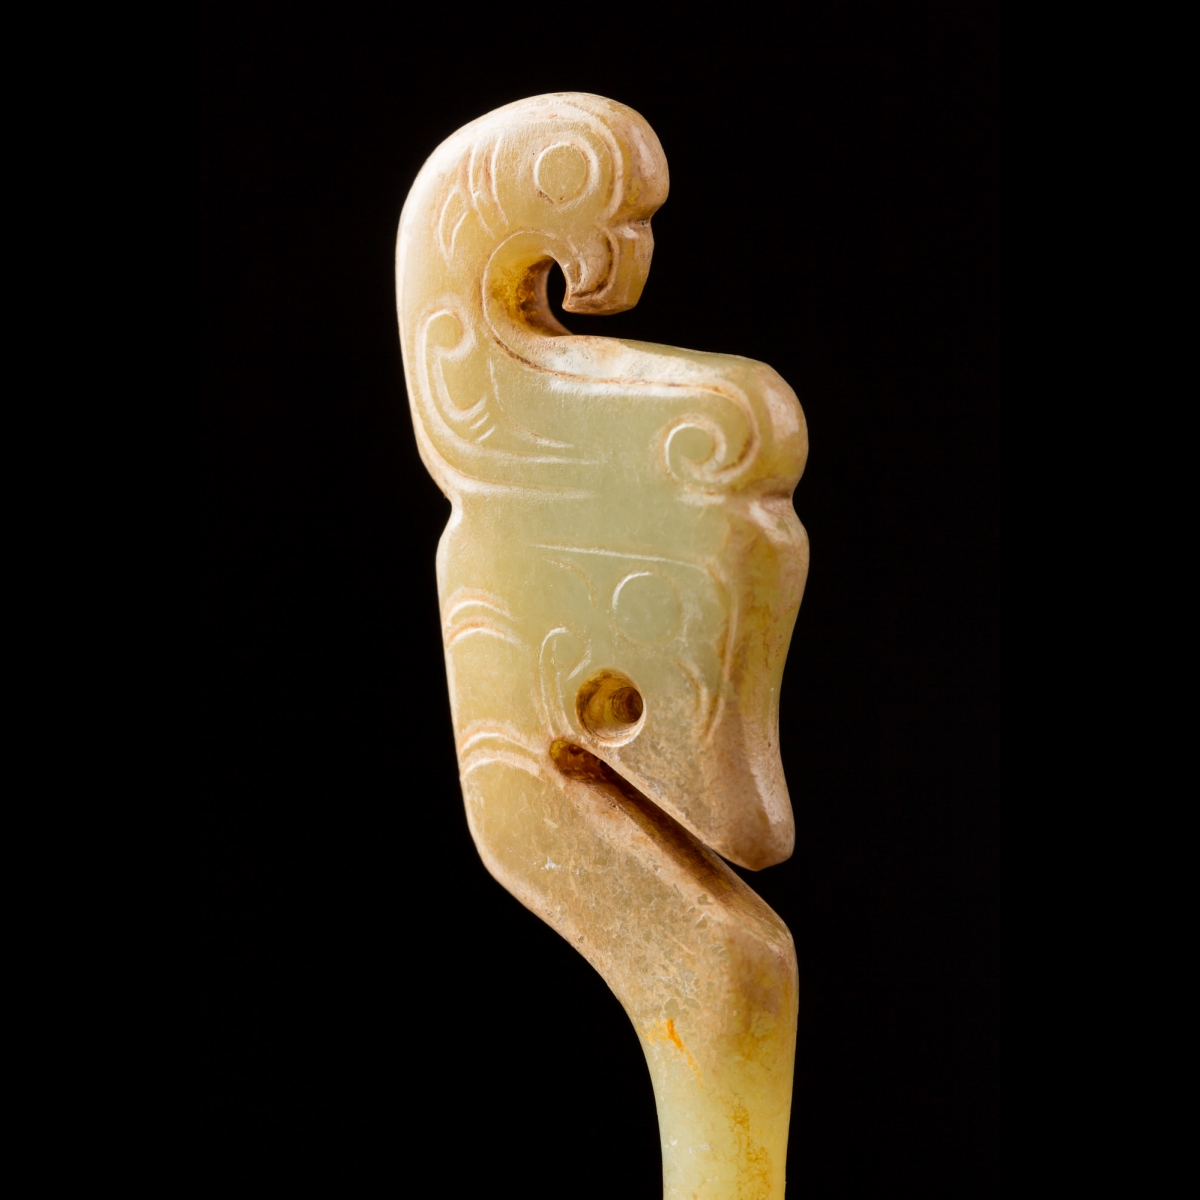 Photo of jade-hairpin-china-archaic-dynasties-dragon-and-phoenix-galerie-golconda